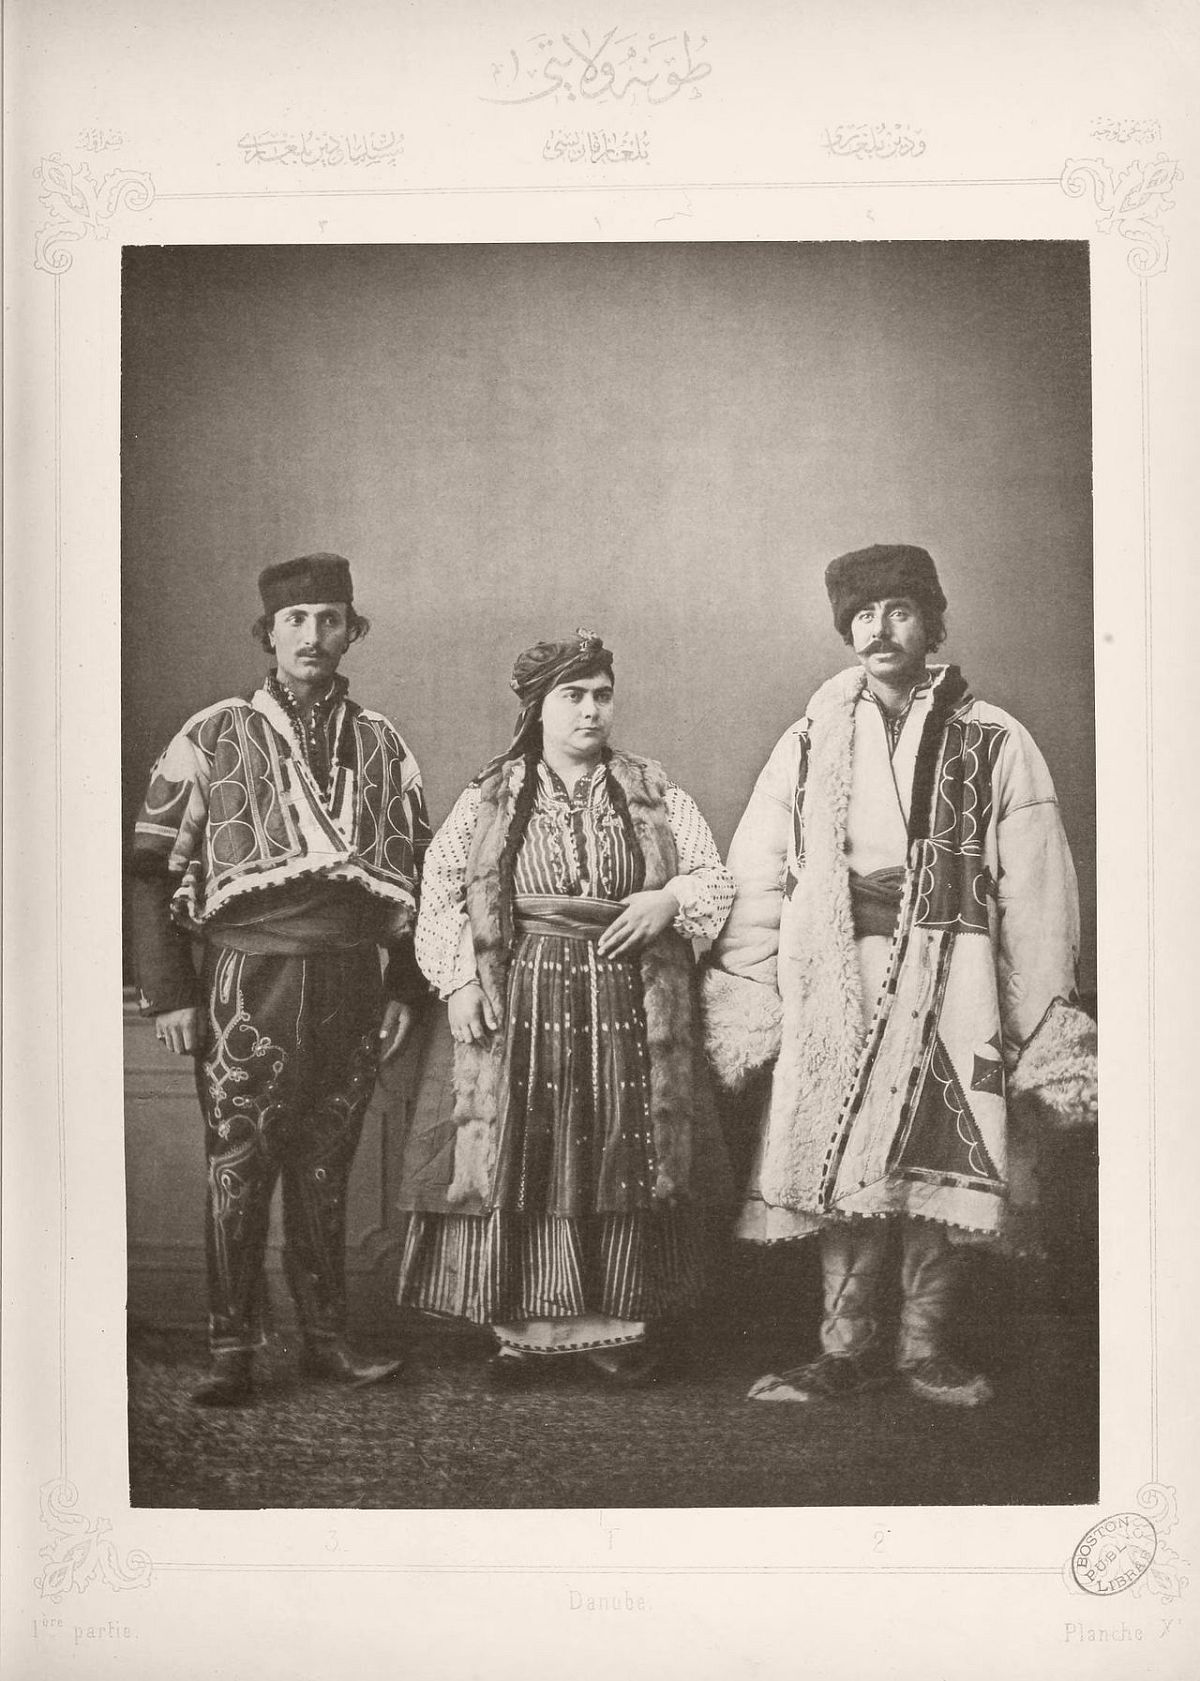 1: Bulgarian woman from Ruse 2. Christian Bulgarian from Vidin 3. Muslim Bulgarian from Vidin